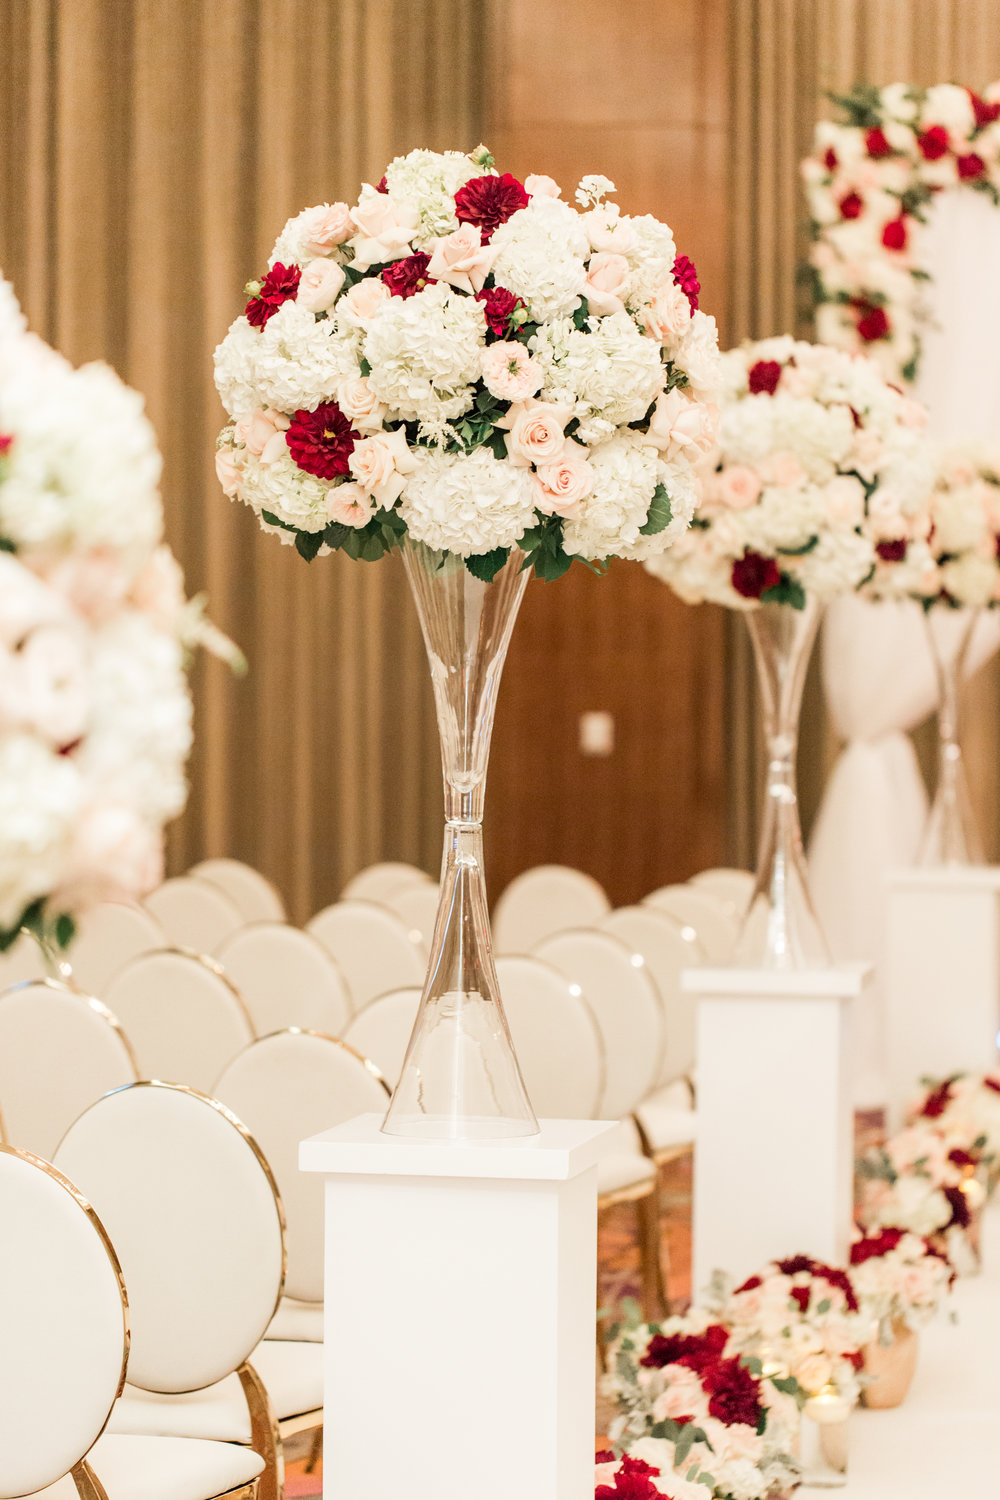 Wedding ceremony aisle markers in lush wedding ceremony.  Luxury wedding at the Mandarin Oriental with a color scheme of white, blush, and pops of wine red produced by Las Vegas Wedding Planner Andrea Eppolito with photos by Stephen Salazar Photography.